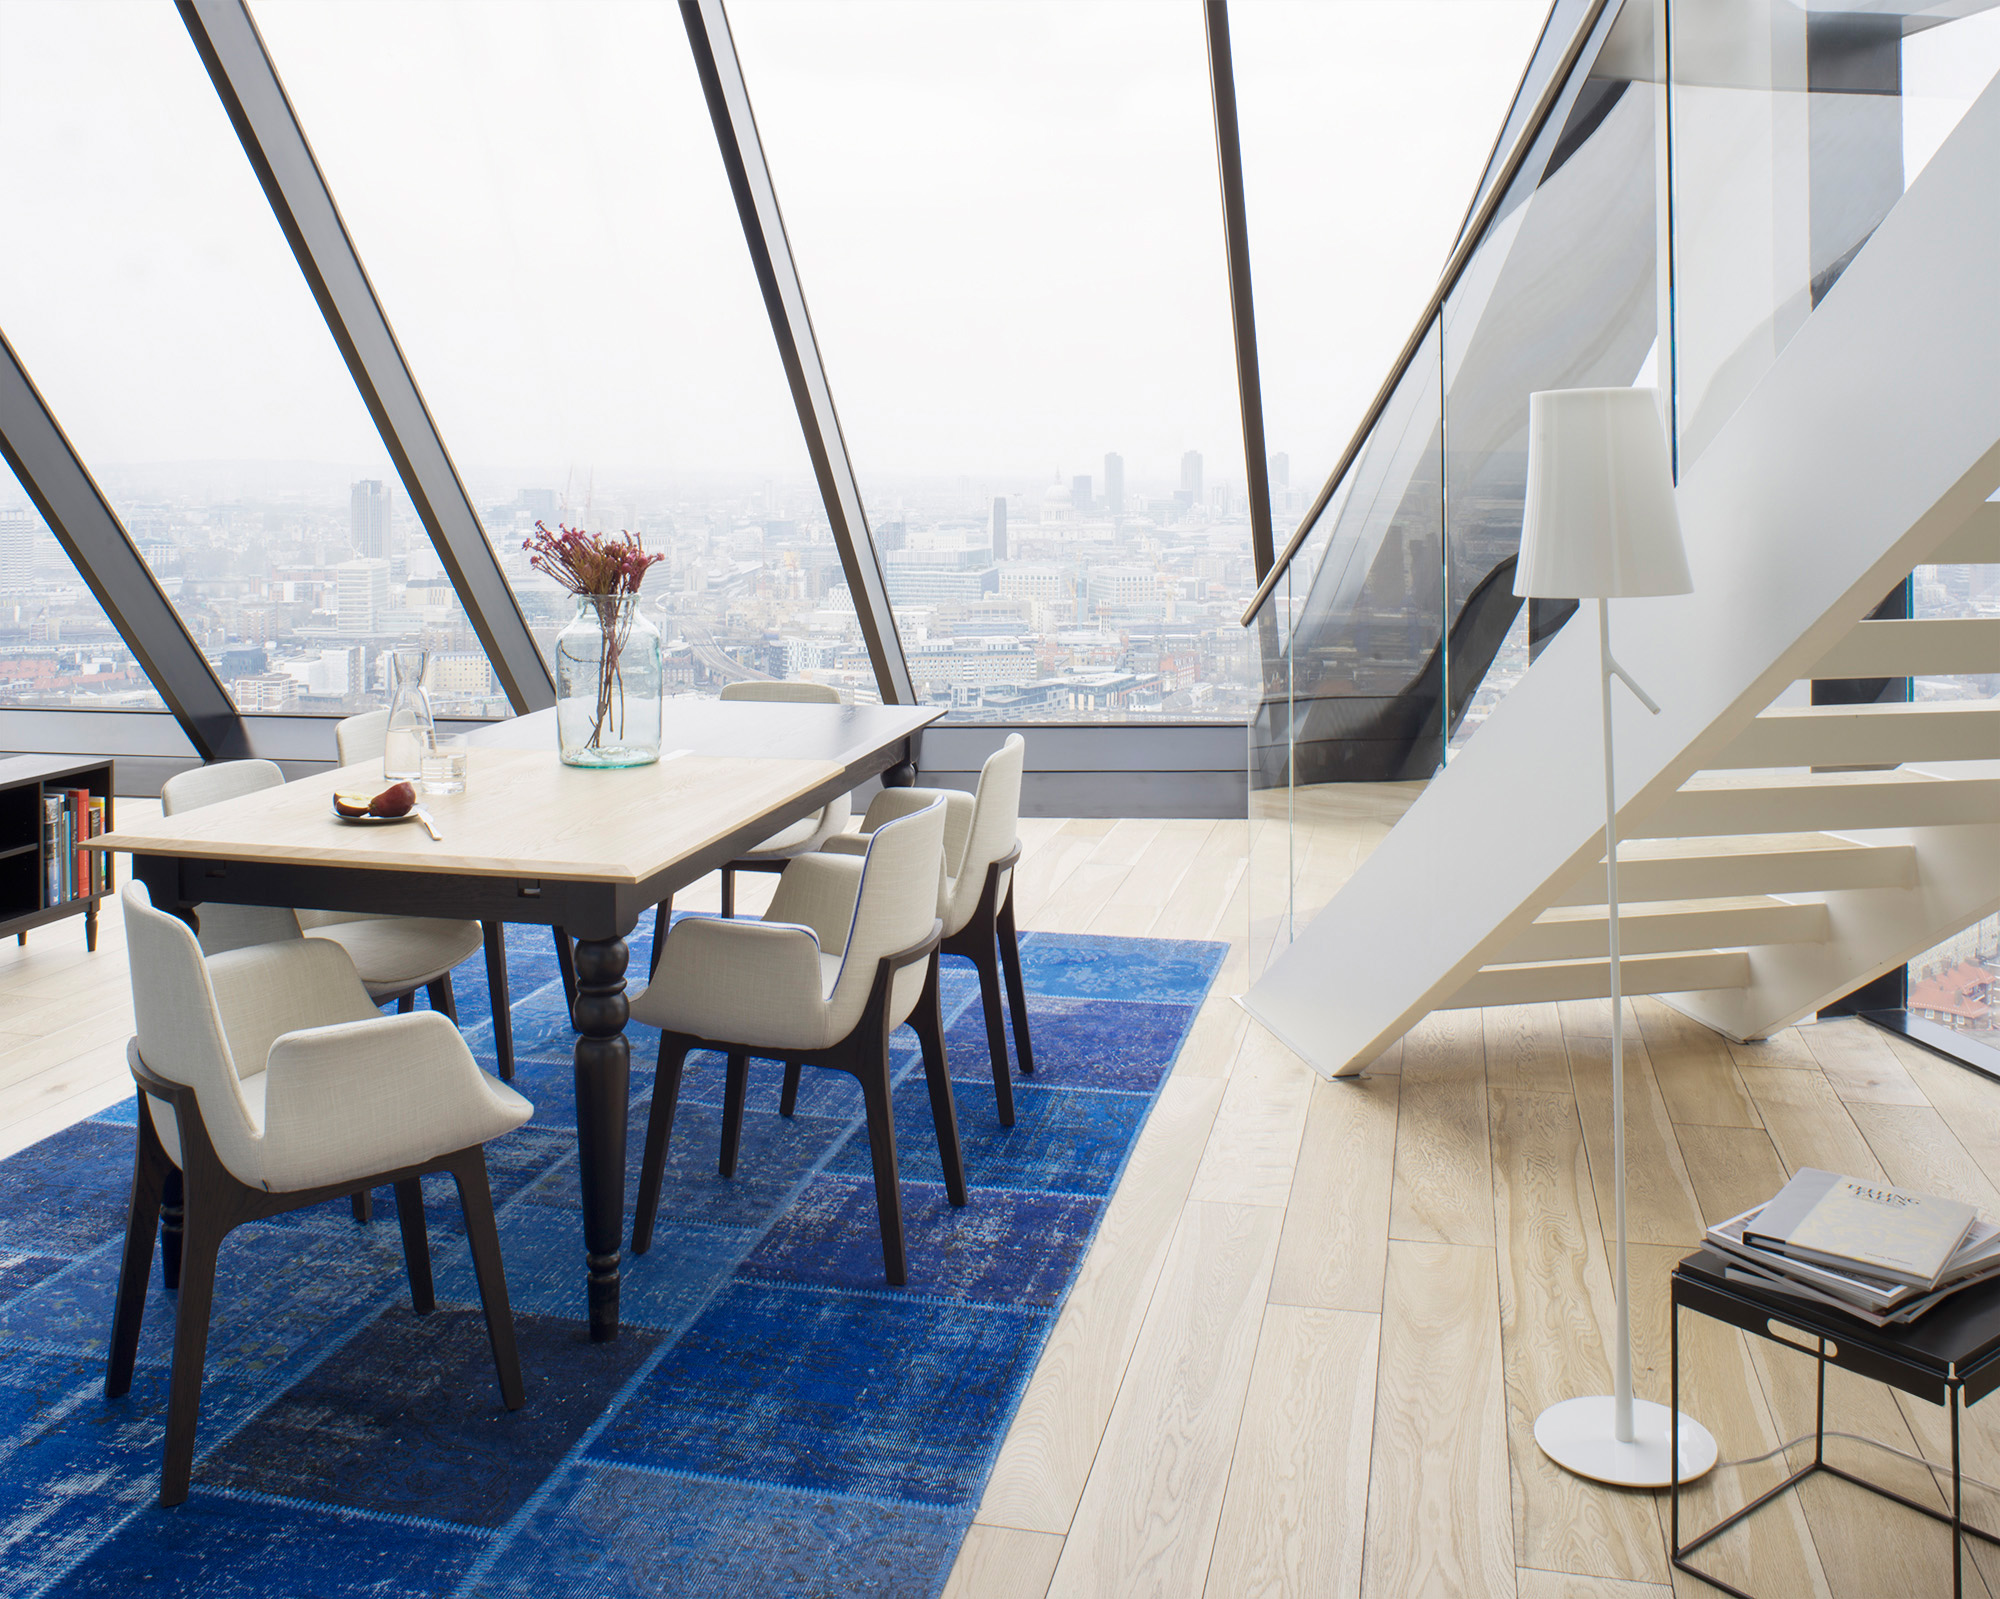 Dining table overlooking London in one of its highest apartments, dining chairs are Poliform, the table is an extension table by Georg Œhler manufactured in London.  Photography Justin Barton